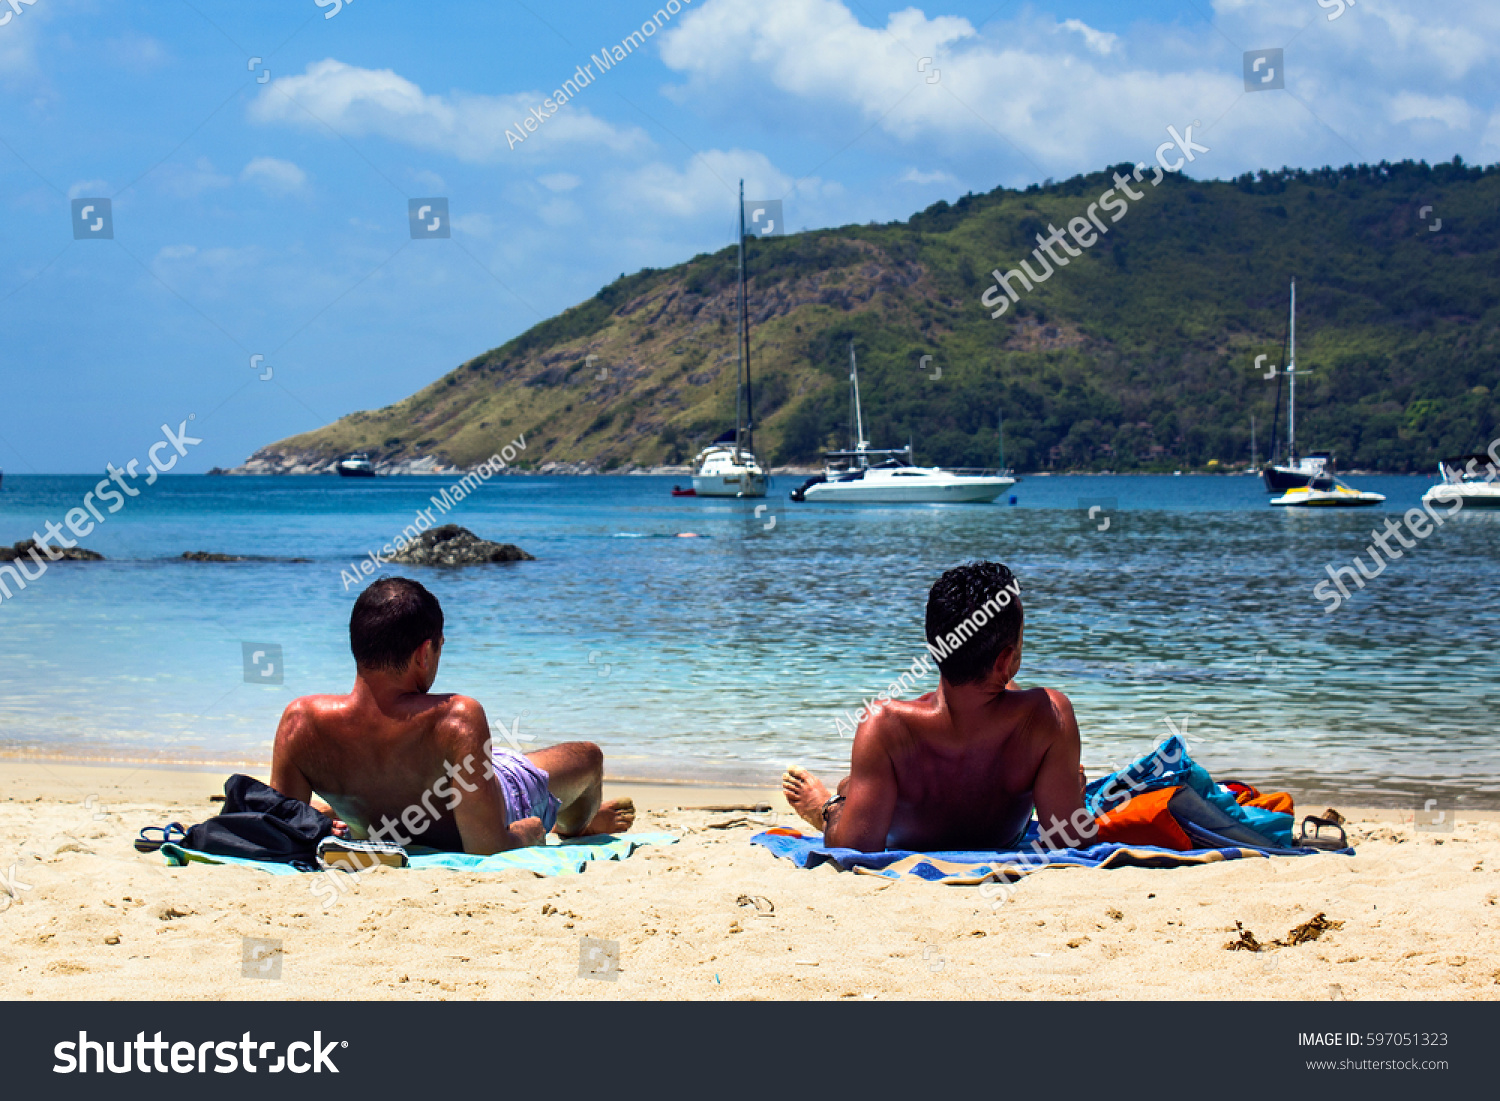 Gay Men Couple Tanning On The Beach Two Men Lying On The Beach Taking Sunbath